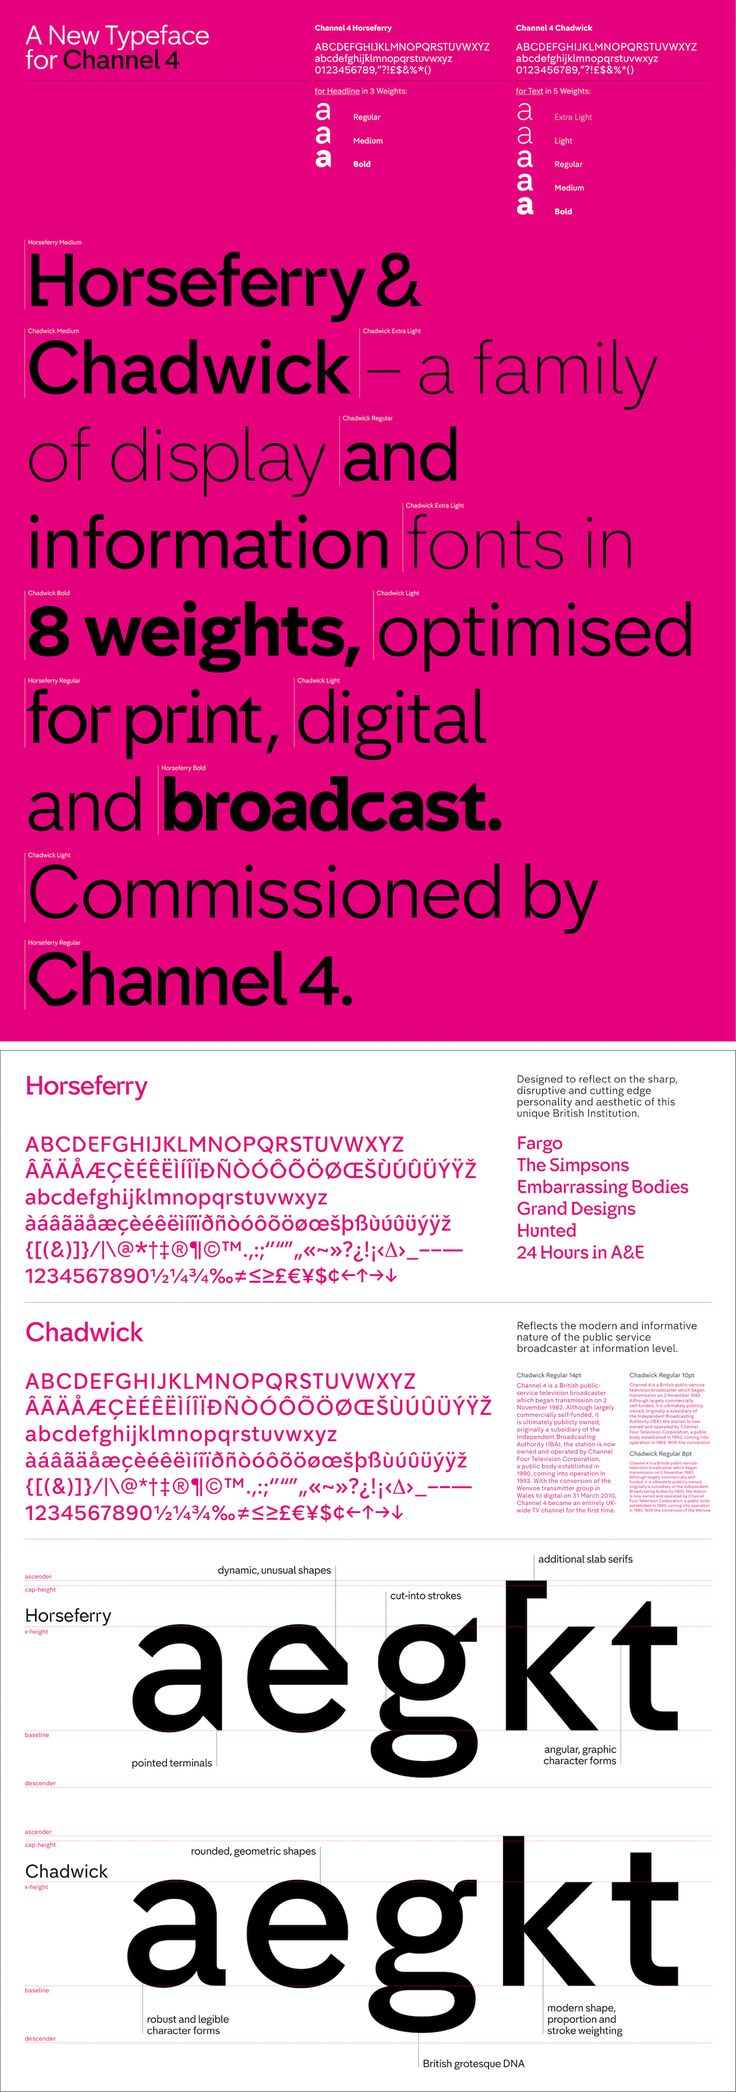 Channel 4 rebrands, with help from Jonathan Glazer and Neville Brody http://www.jakewetton.co.uk/blog/channel-4-rebranded